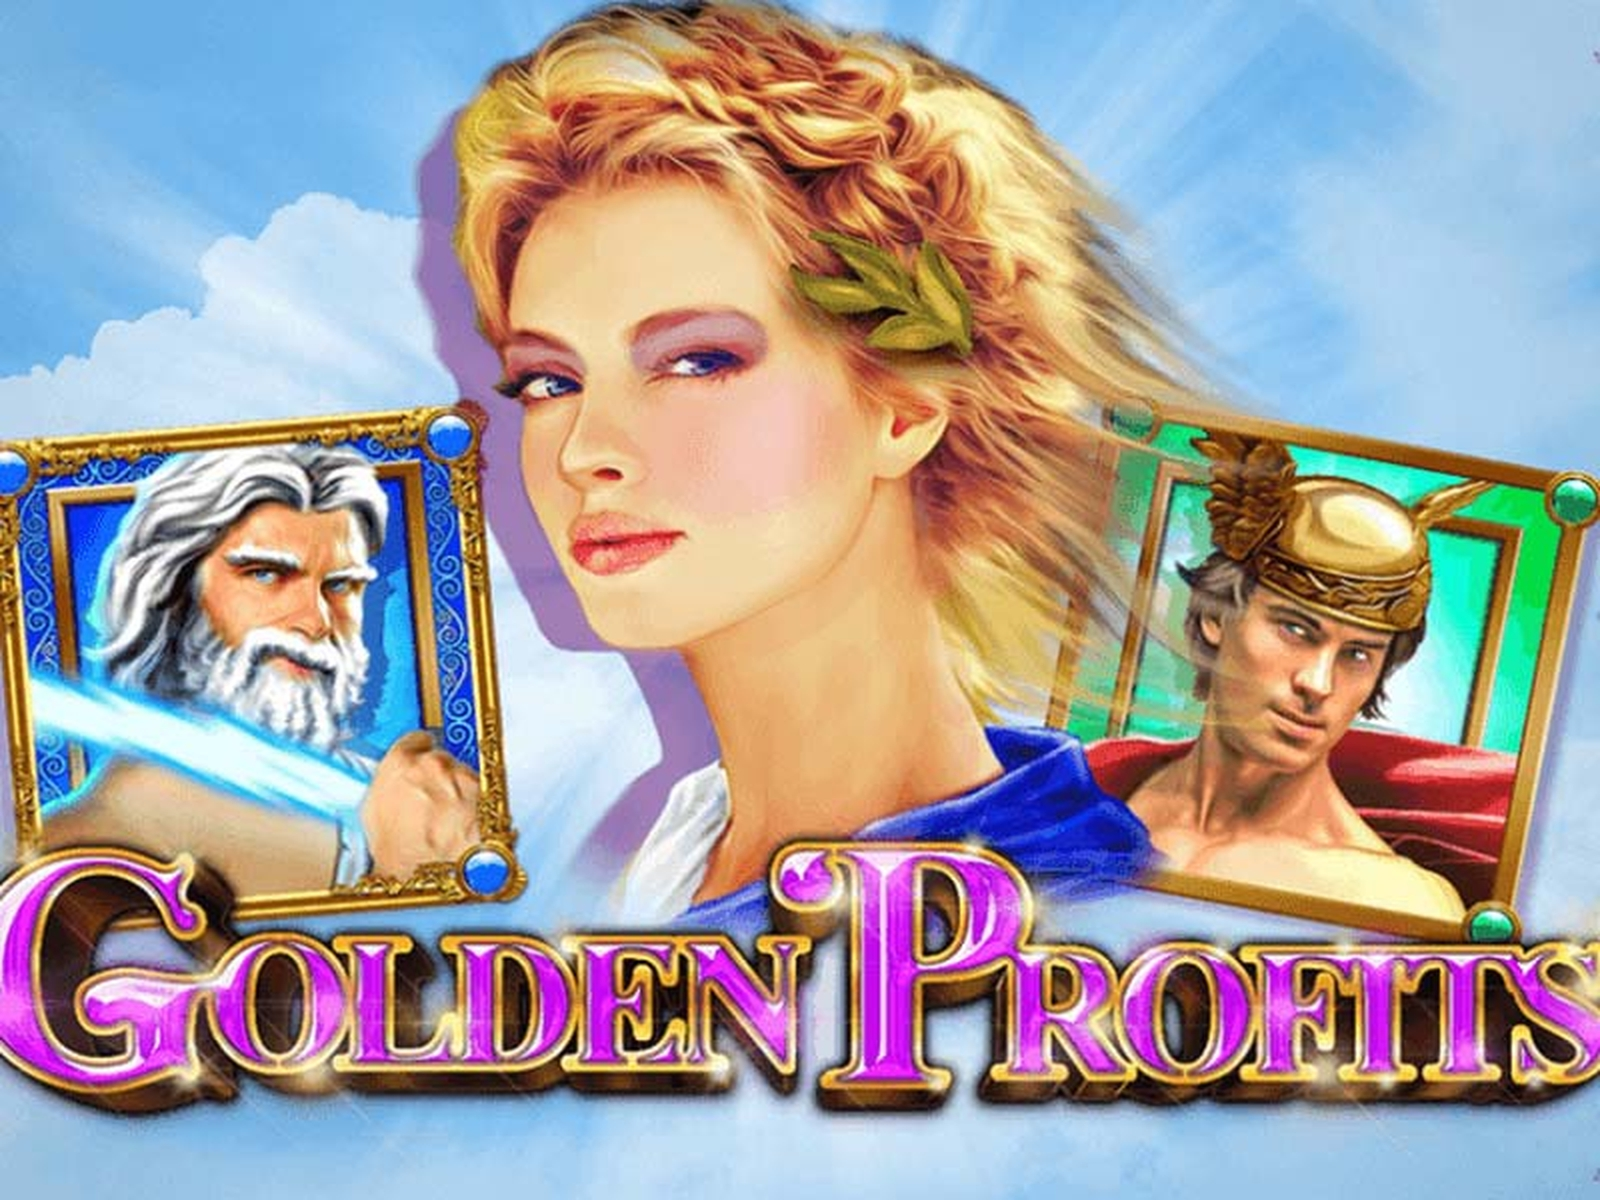 The Golden Profits Online Slot Demo Game by Booming Games